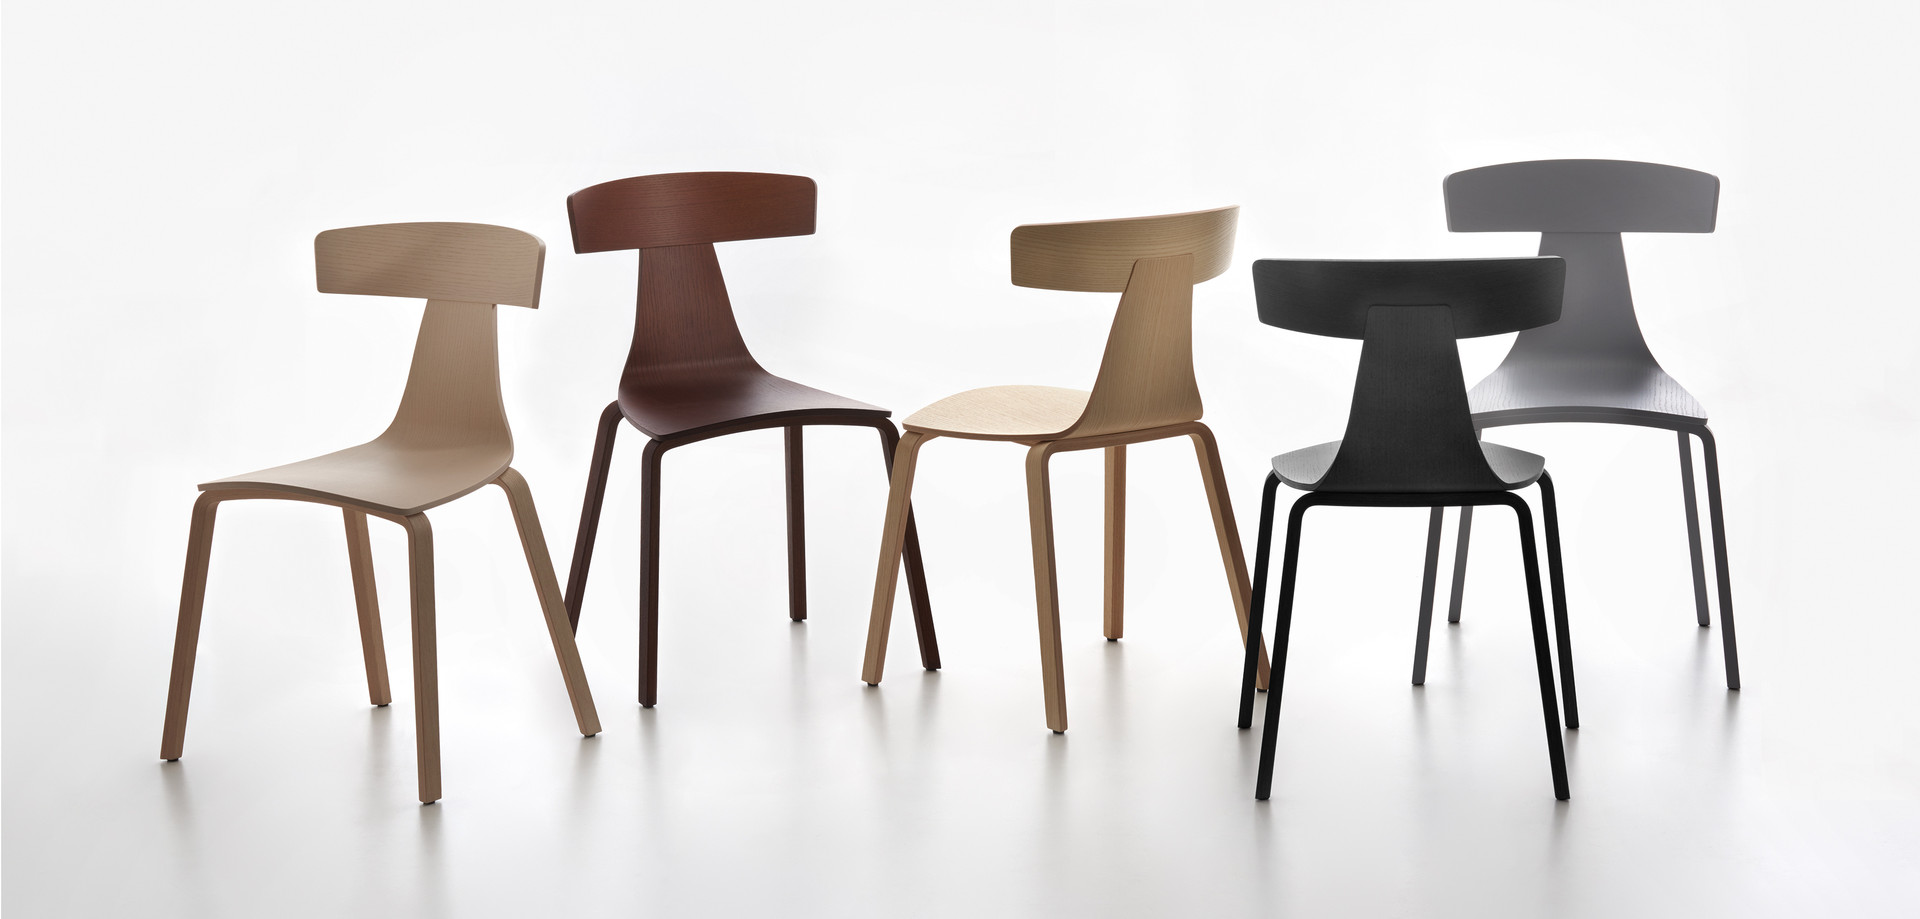 Plank - REMO wood chair, natural finished ash, stained in the colors chalk, walnut, grey, black.